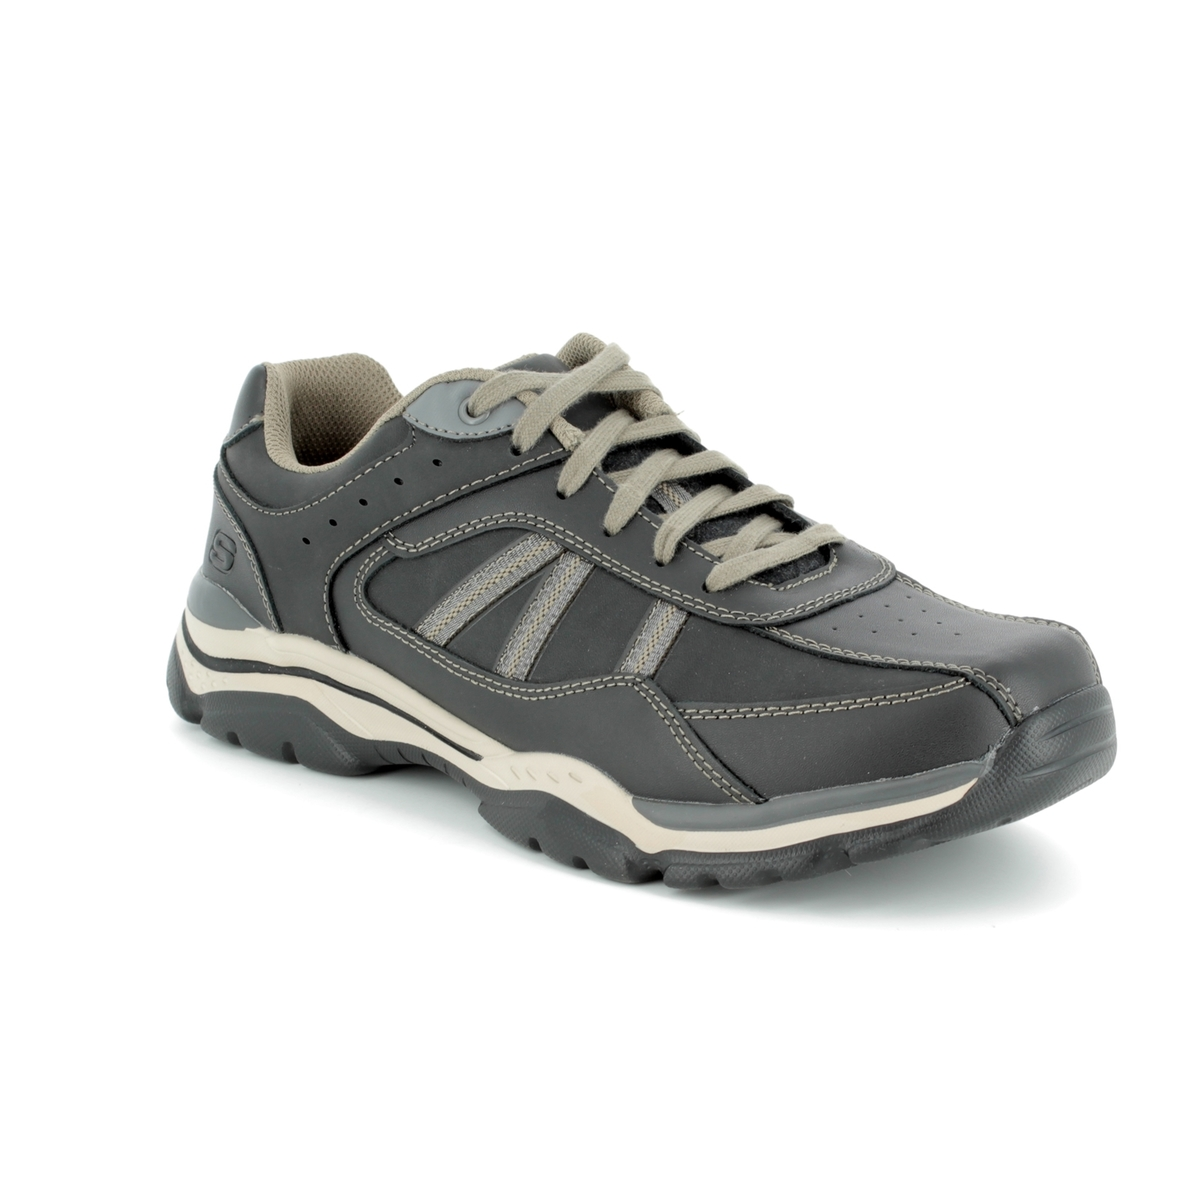 Skechers Rovato Texon Relaxed Fit 65418